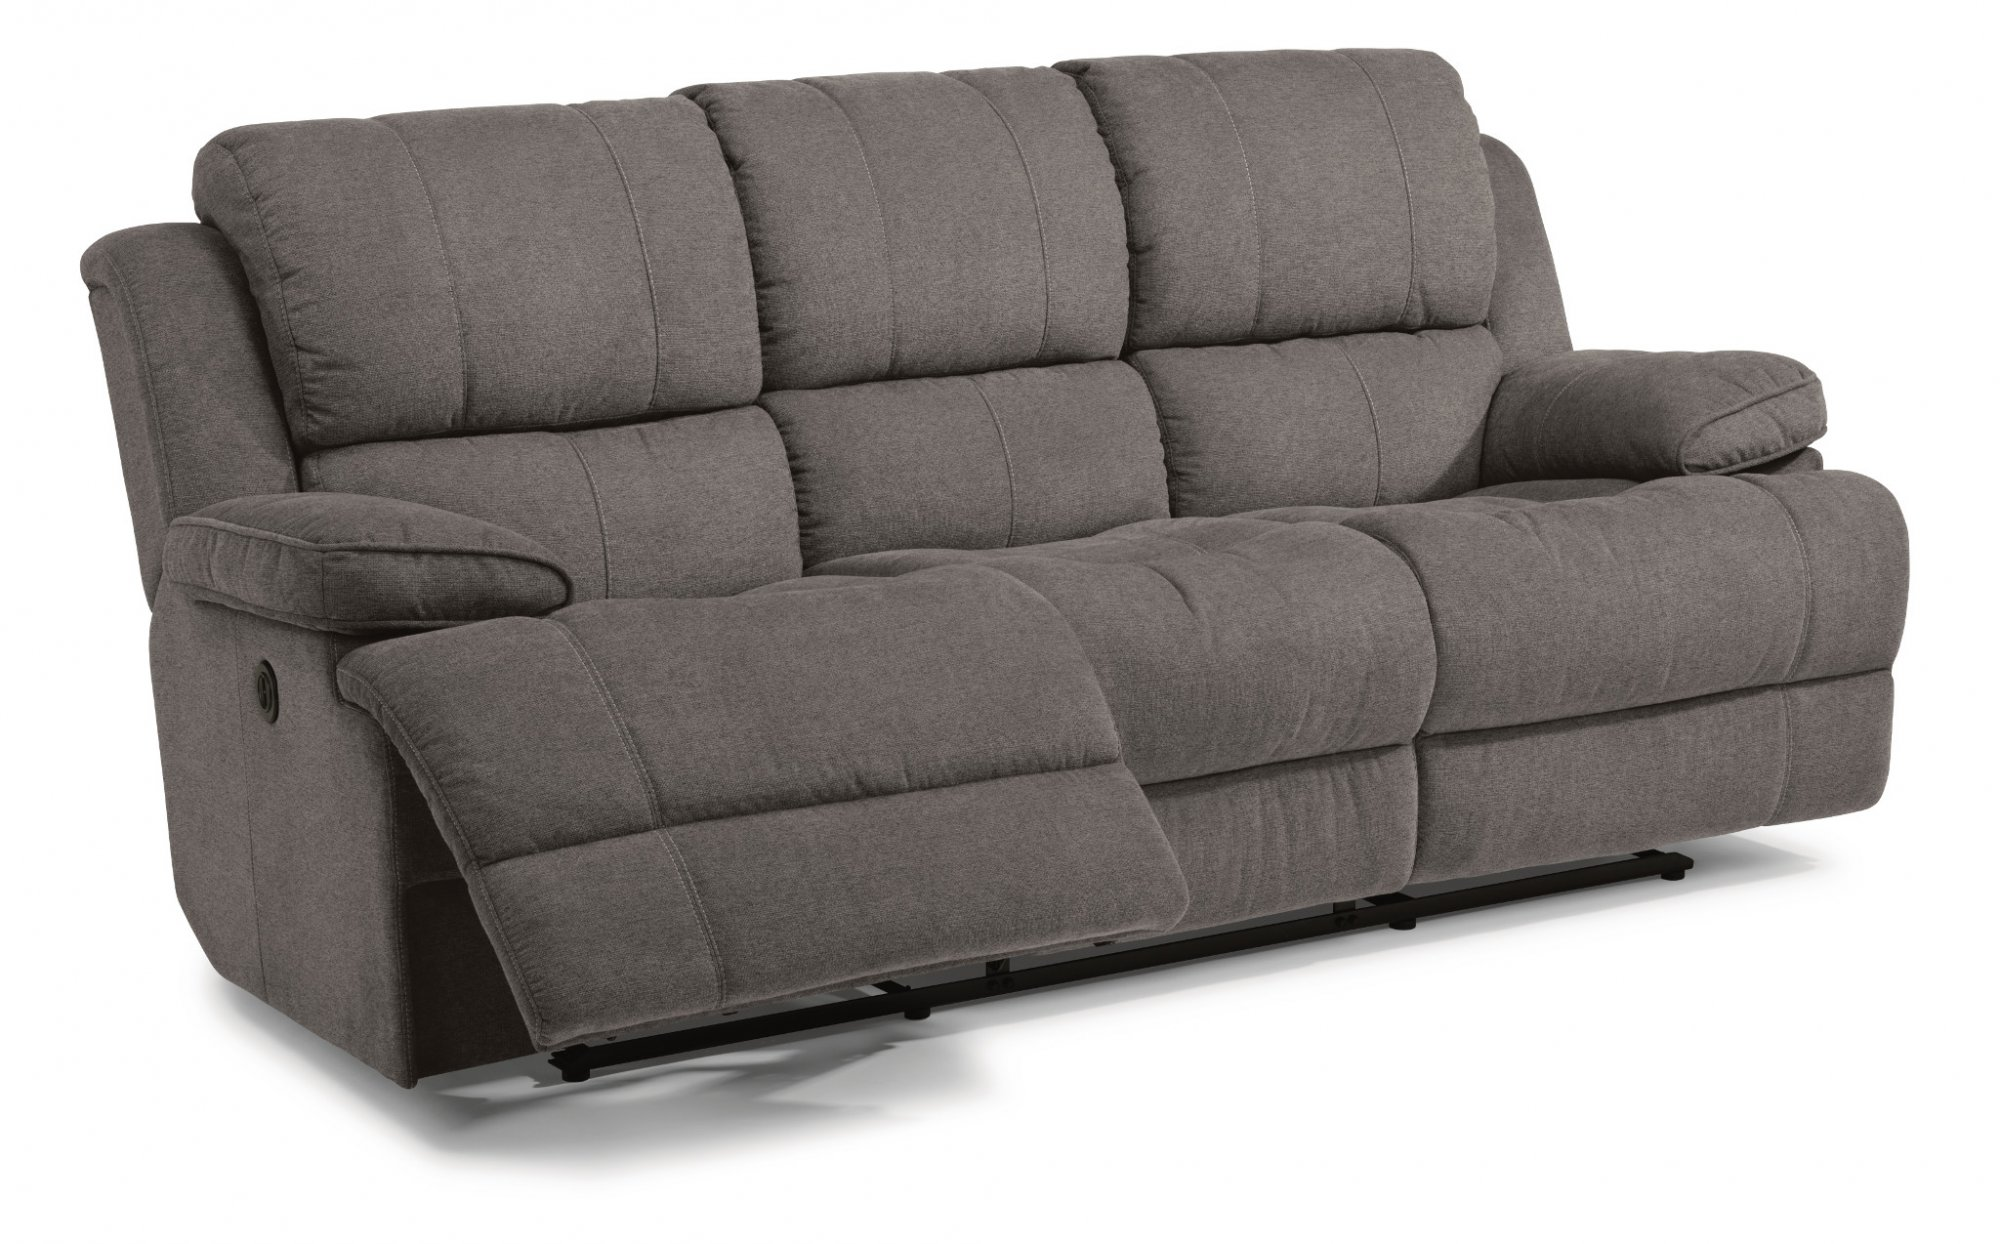 Fabric Power Reclining Sofa  sc 1 st  Flexsteel & Sofas and Loveseats | Reclining Sofas and Sleepers | Flexsteel islam-shia.org